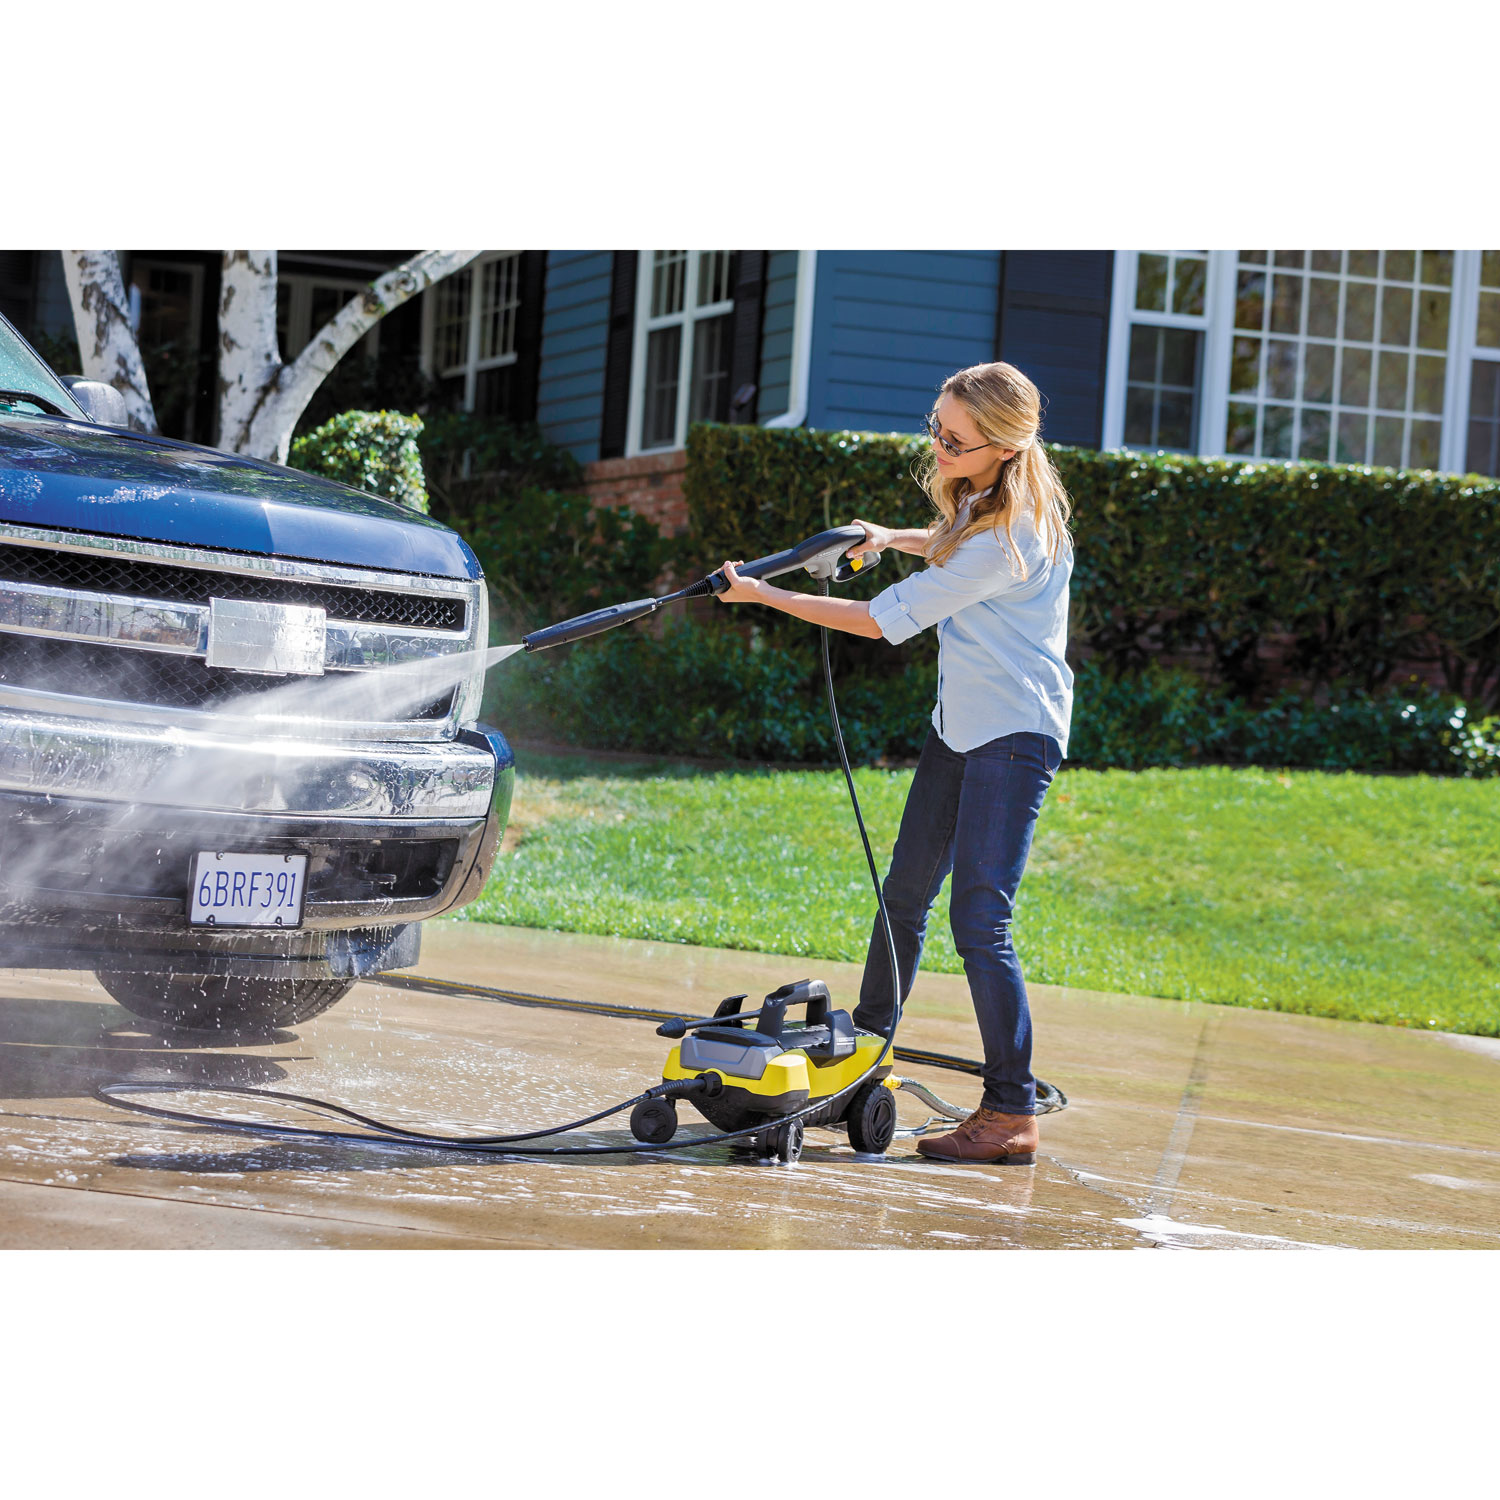 Follow Me Series 1,800 PSI 1.3 GPM Electric Pressure Washer